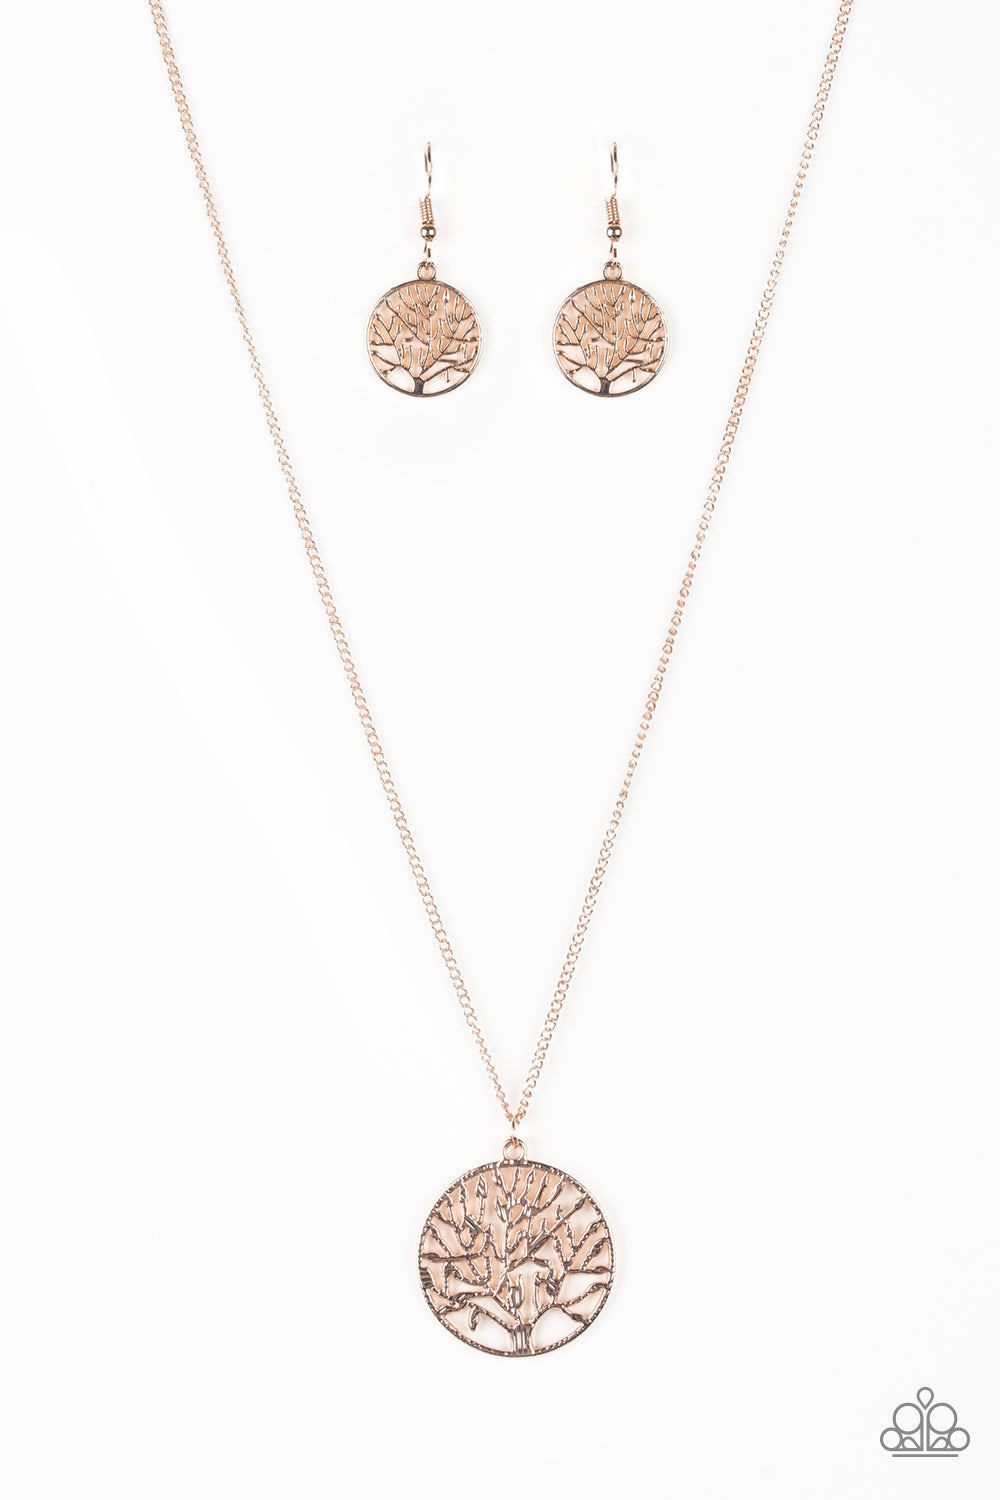 Paparazzi Save The Trees Rose Gold Tree Pendant Necklace Earring S Www Marissasblingonabudget Com